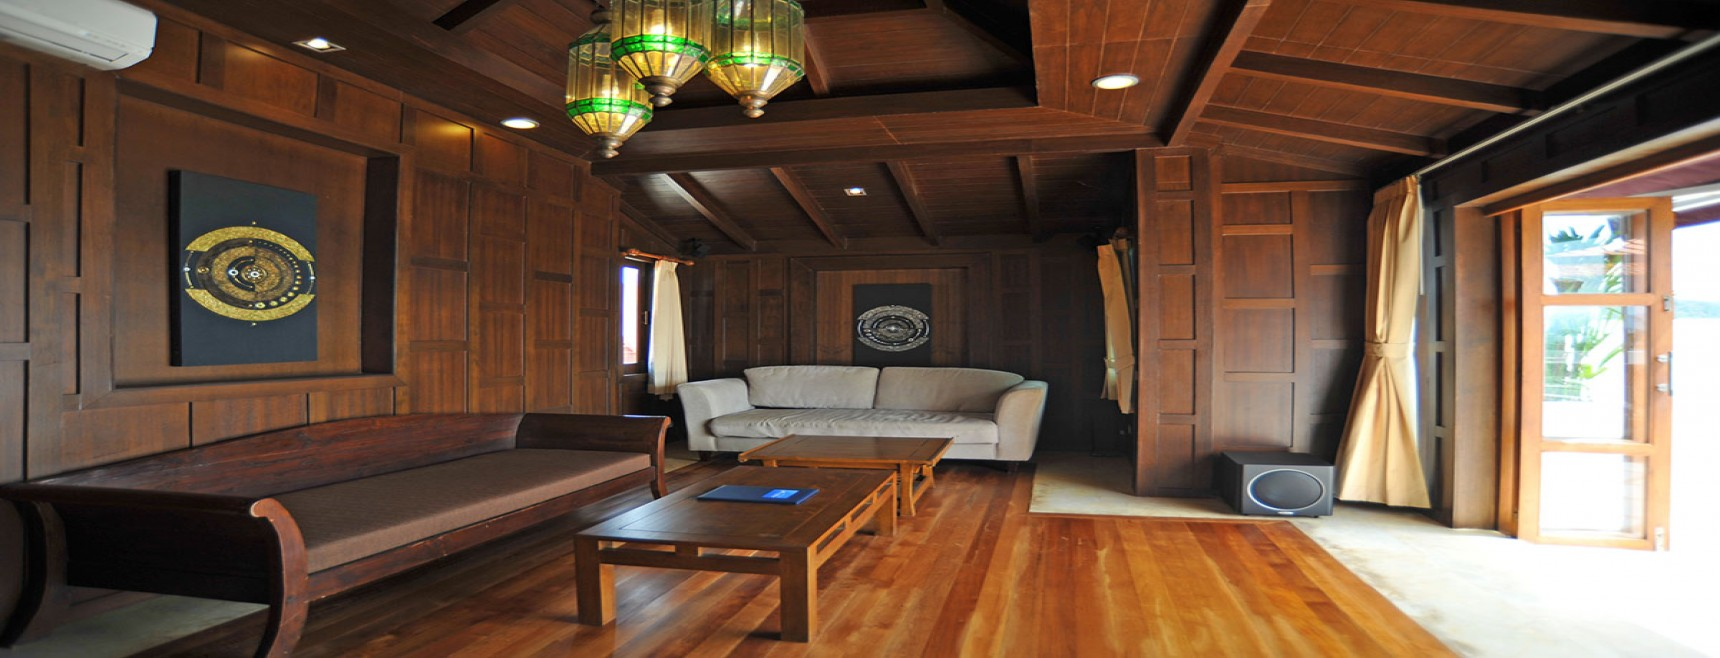 Large 6 Bedroom Villa Overlooking Big Buddha Koh Samui (Thai-Real.com)